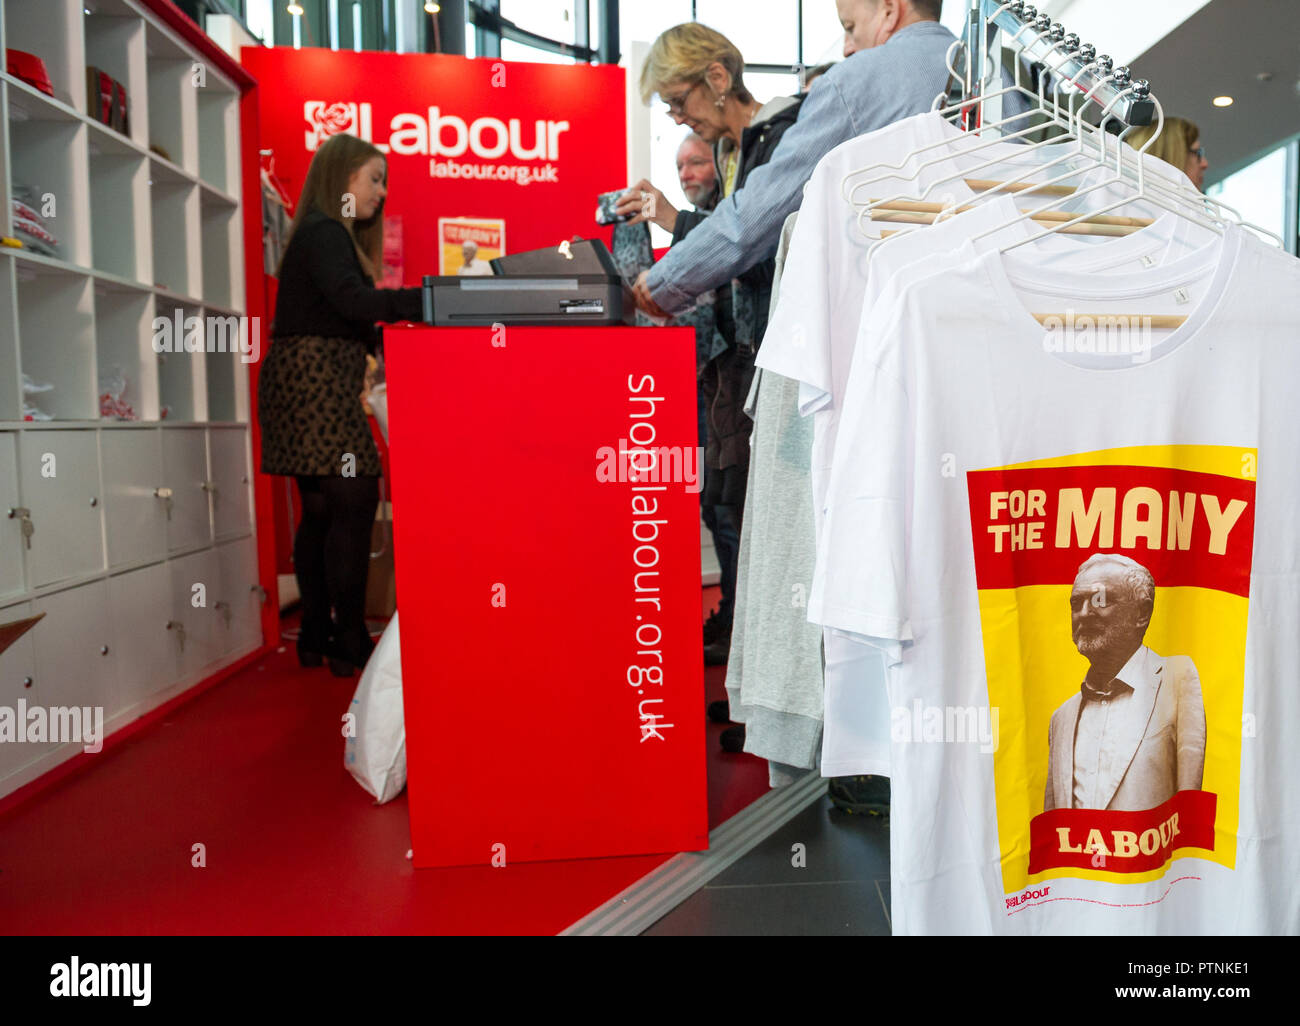 White Jeremy Corbyn tee shirts for sale at the Labour Party annual conference 2018, Liverpool. - Stock Image